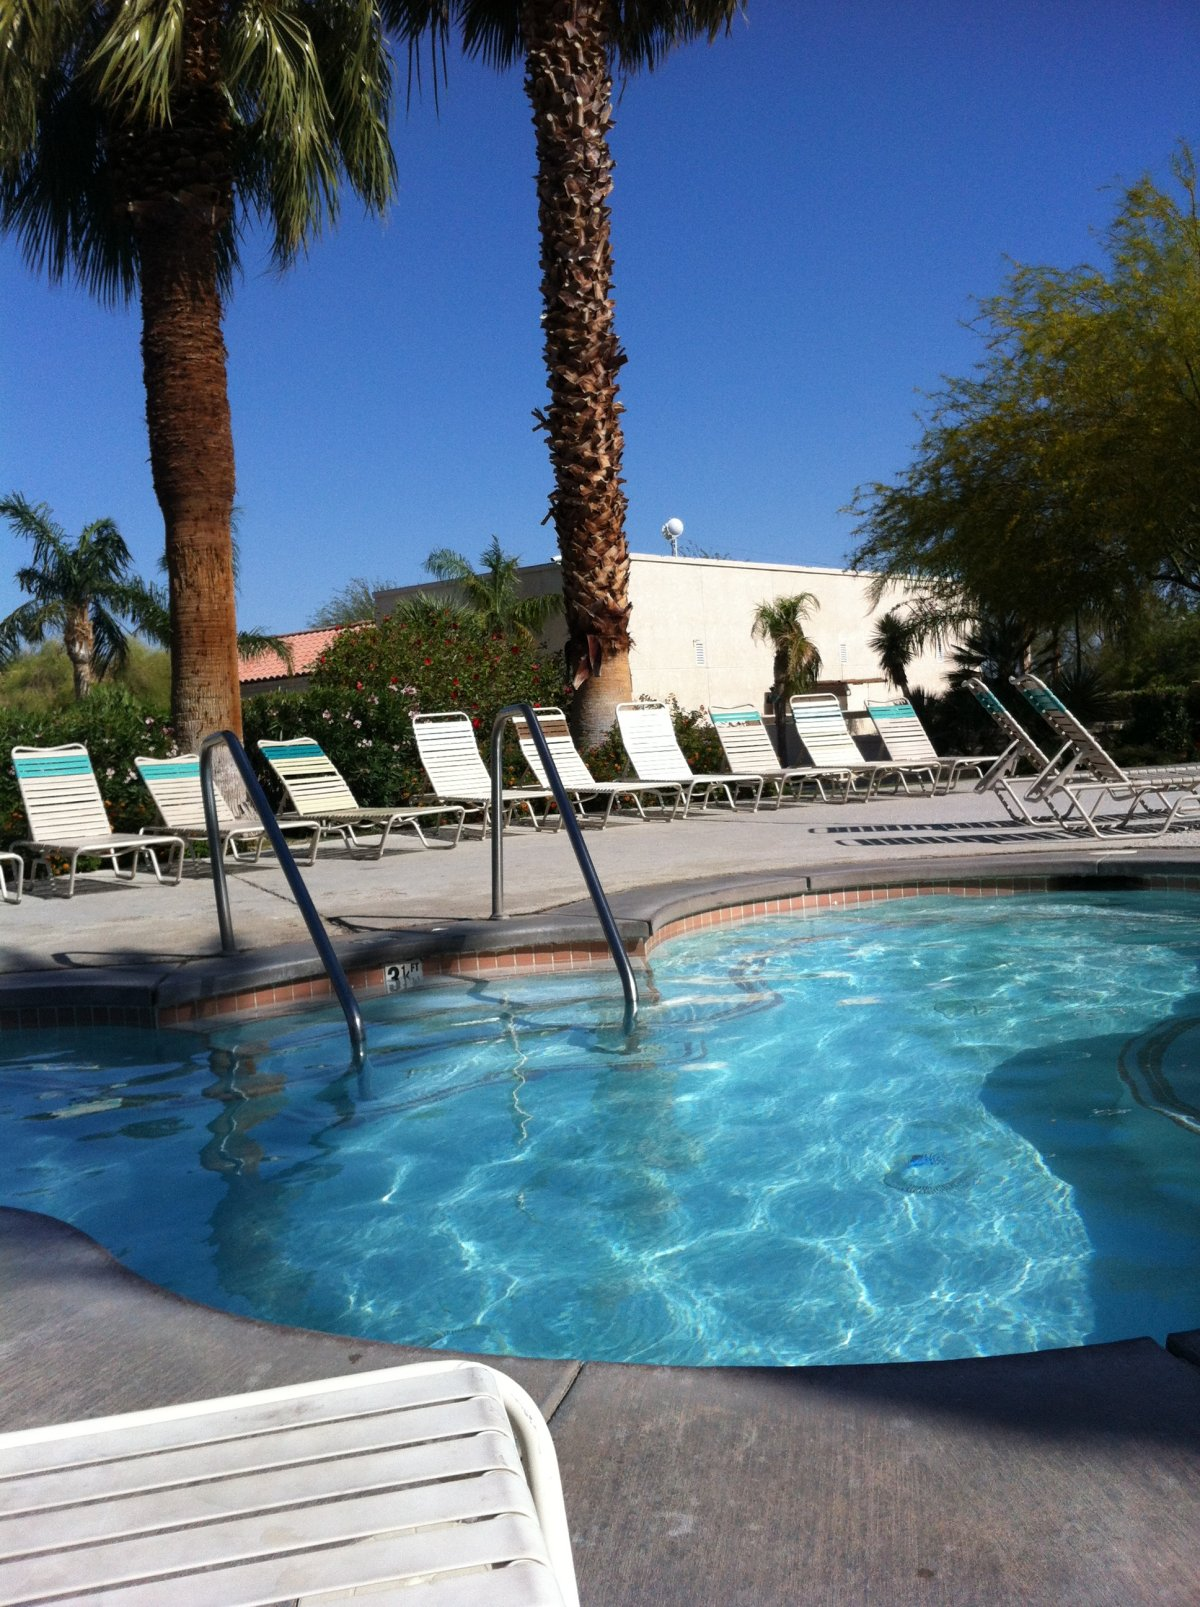 Stay: Miracle Hot Springs of Desert Hot Springs California + Local Attractions - Dave's Travel ...